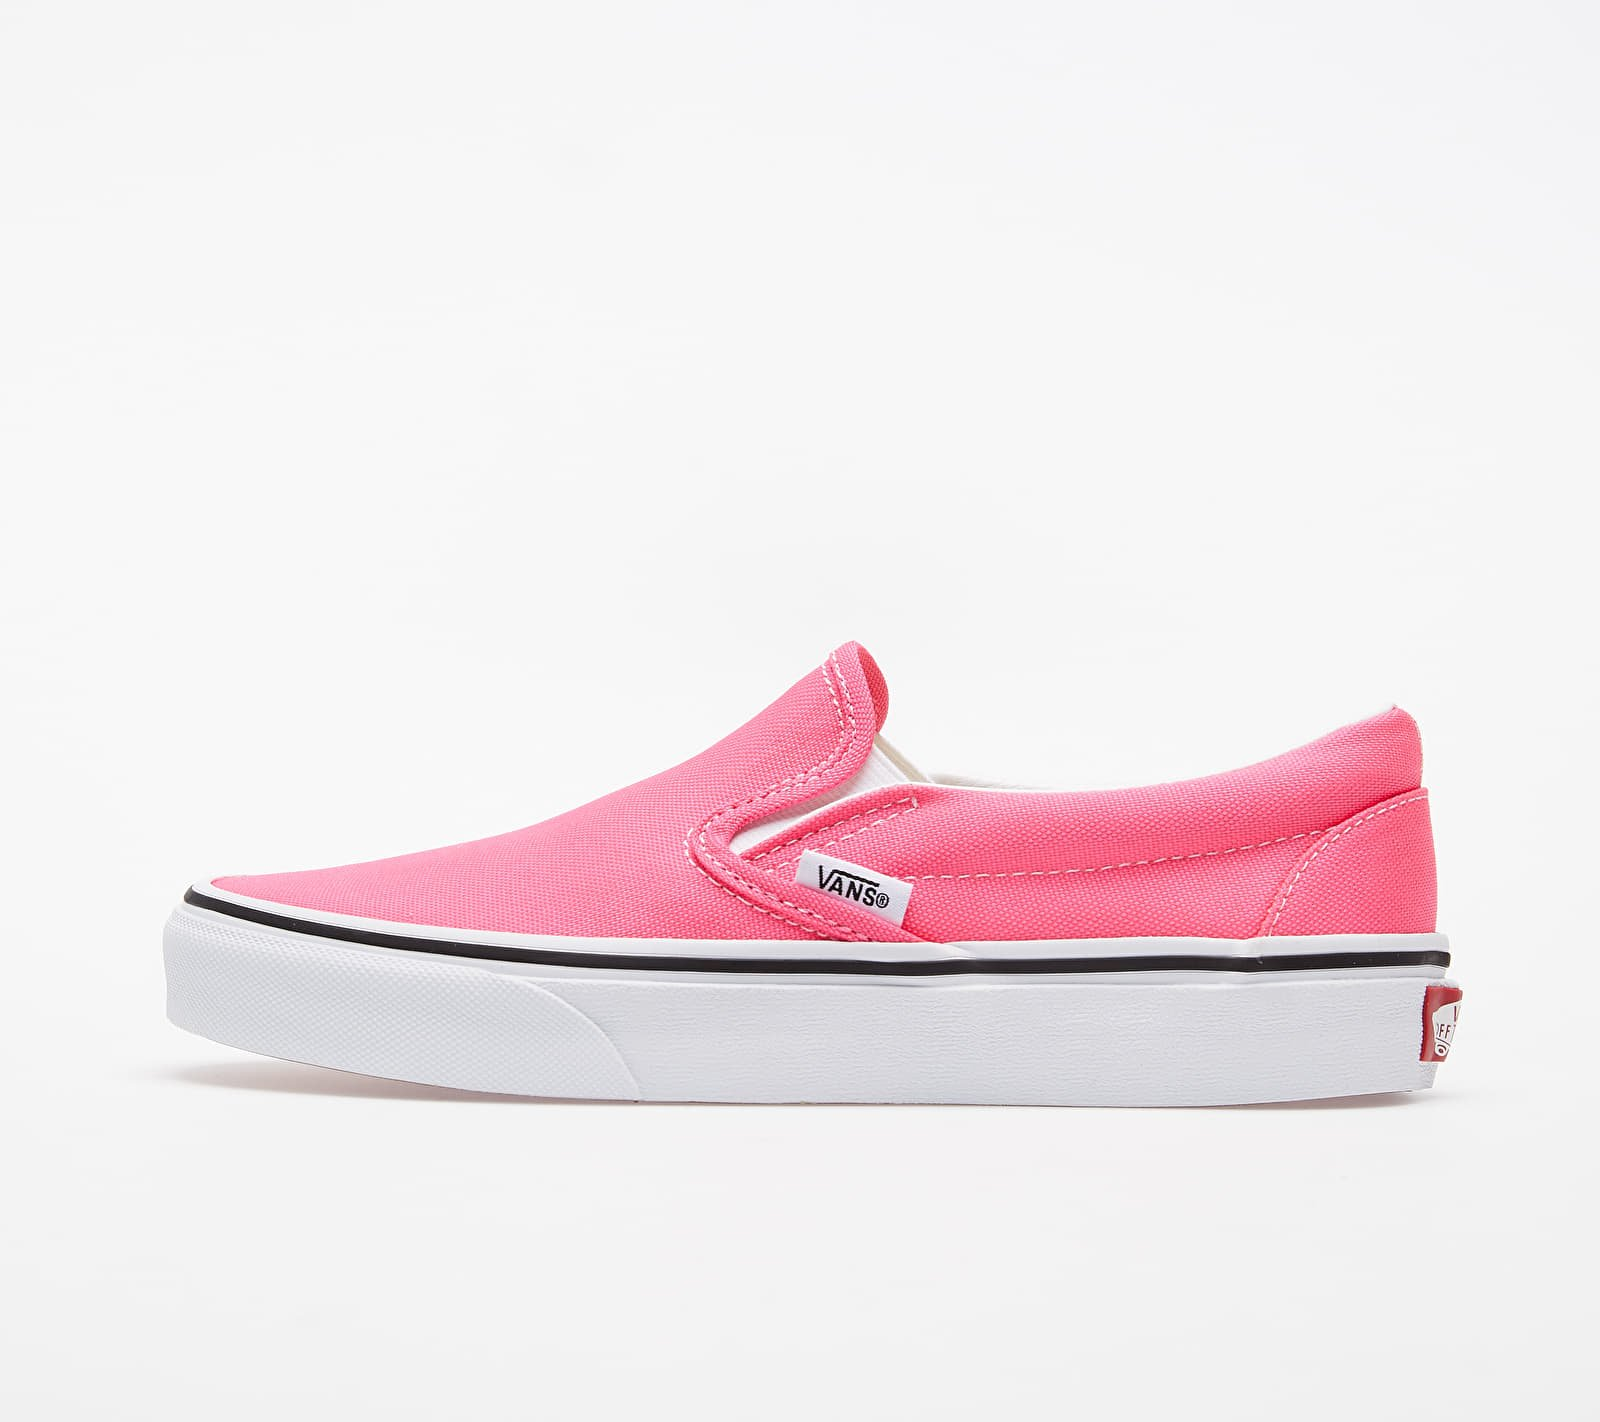 Vans Classic Slip-On (Neon) Knockout Pink/ True White EUR 36.5